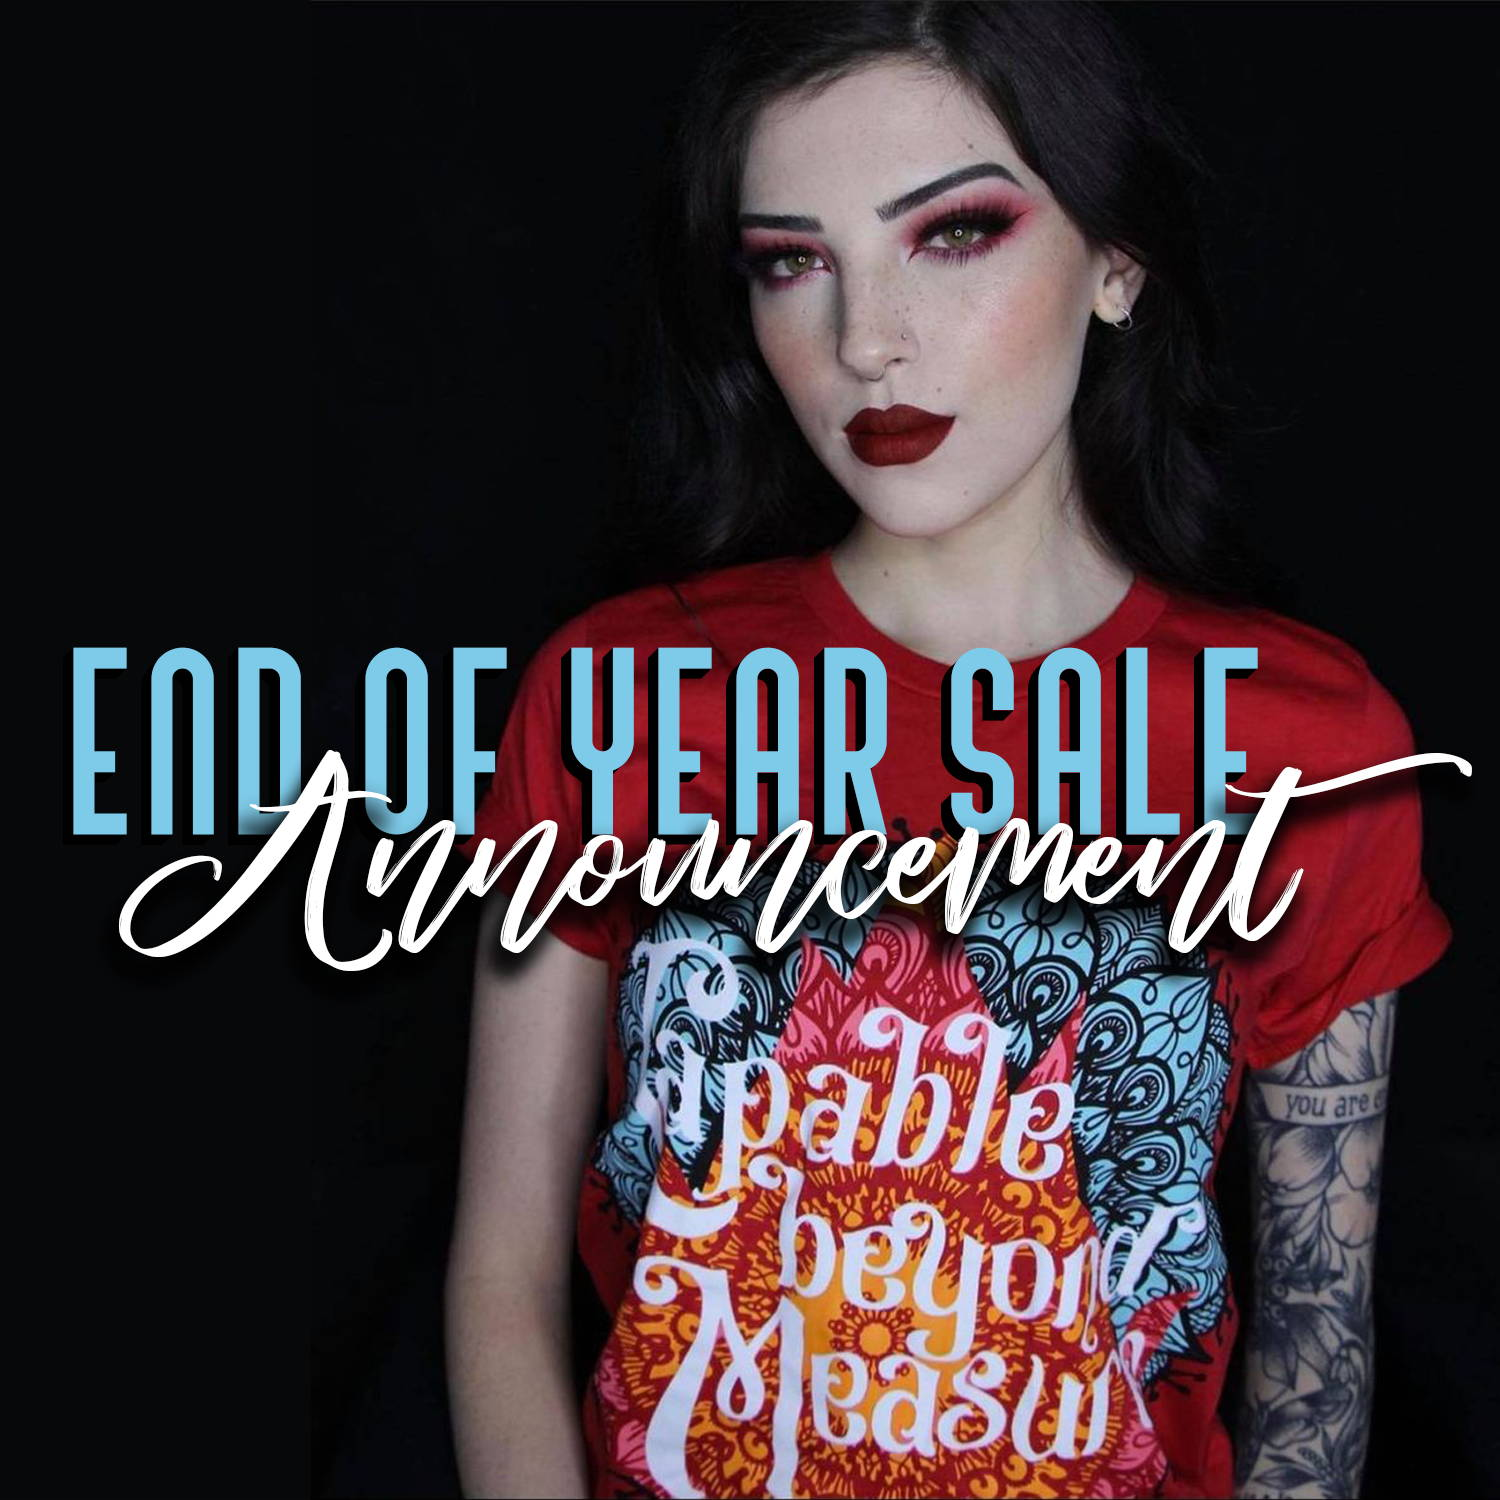 End of Year Sale Announcement